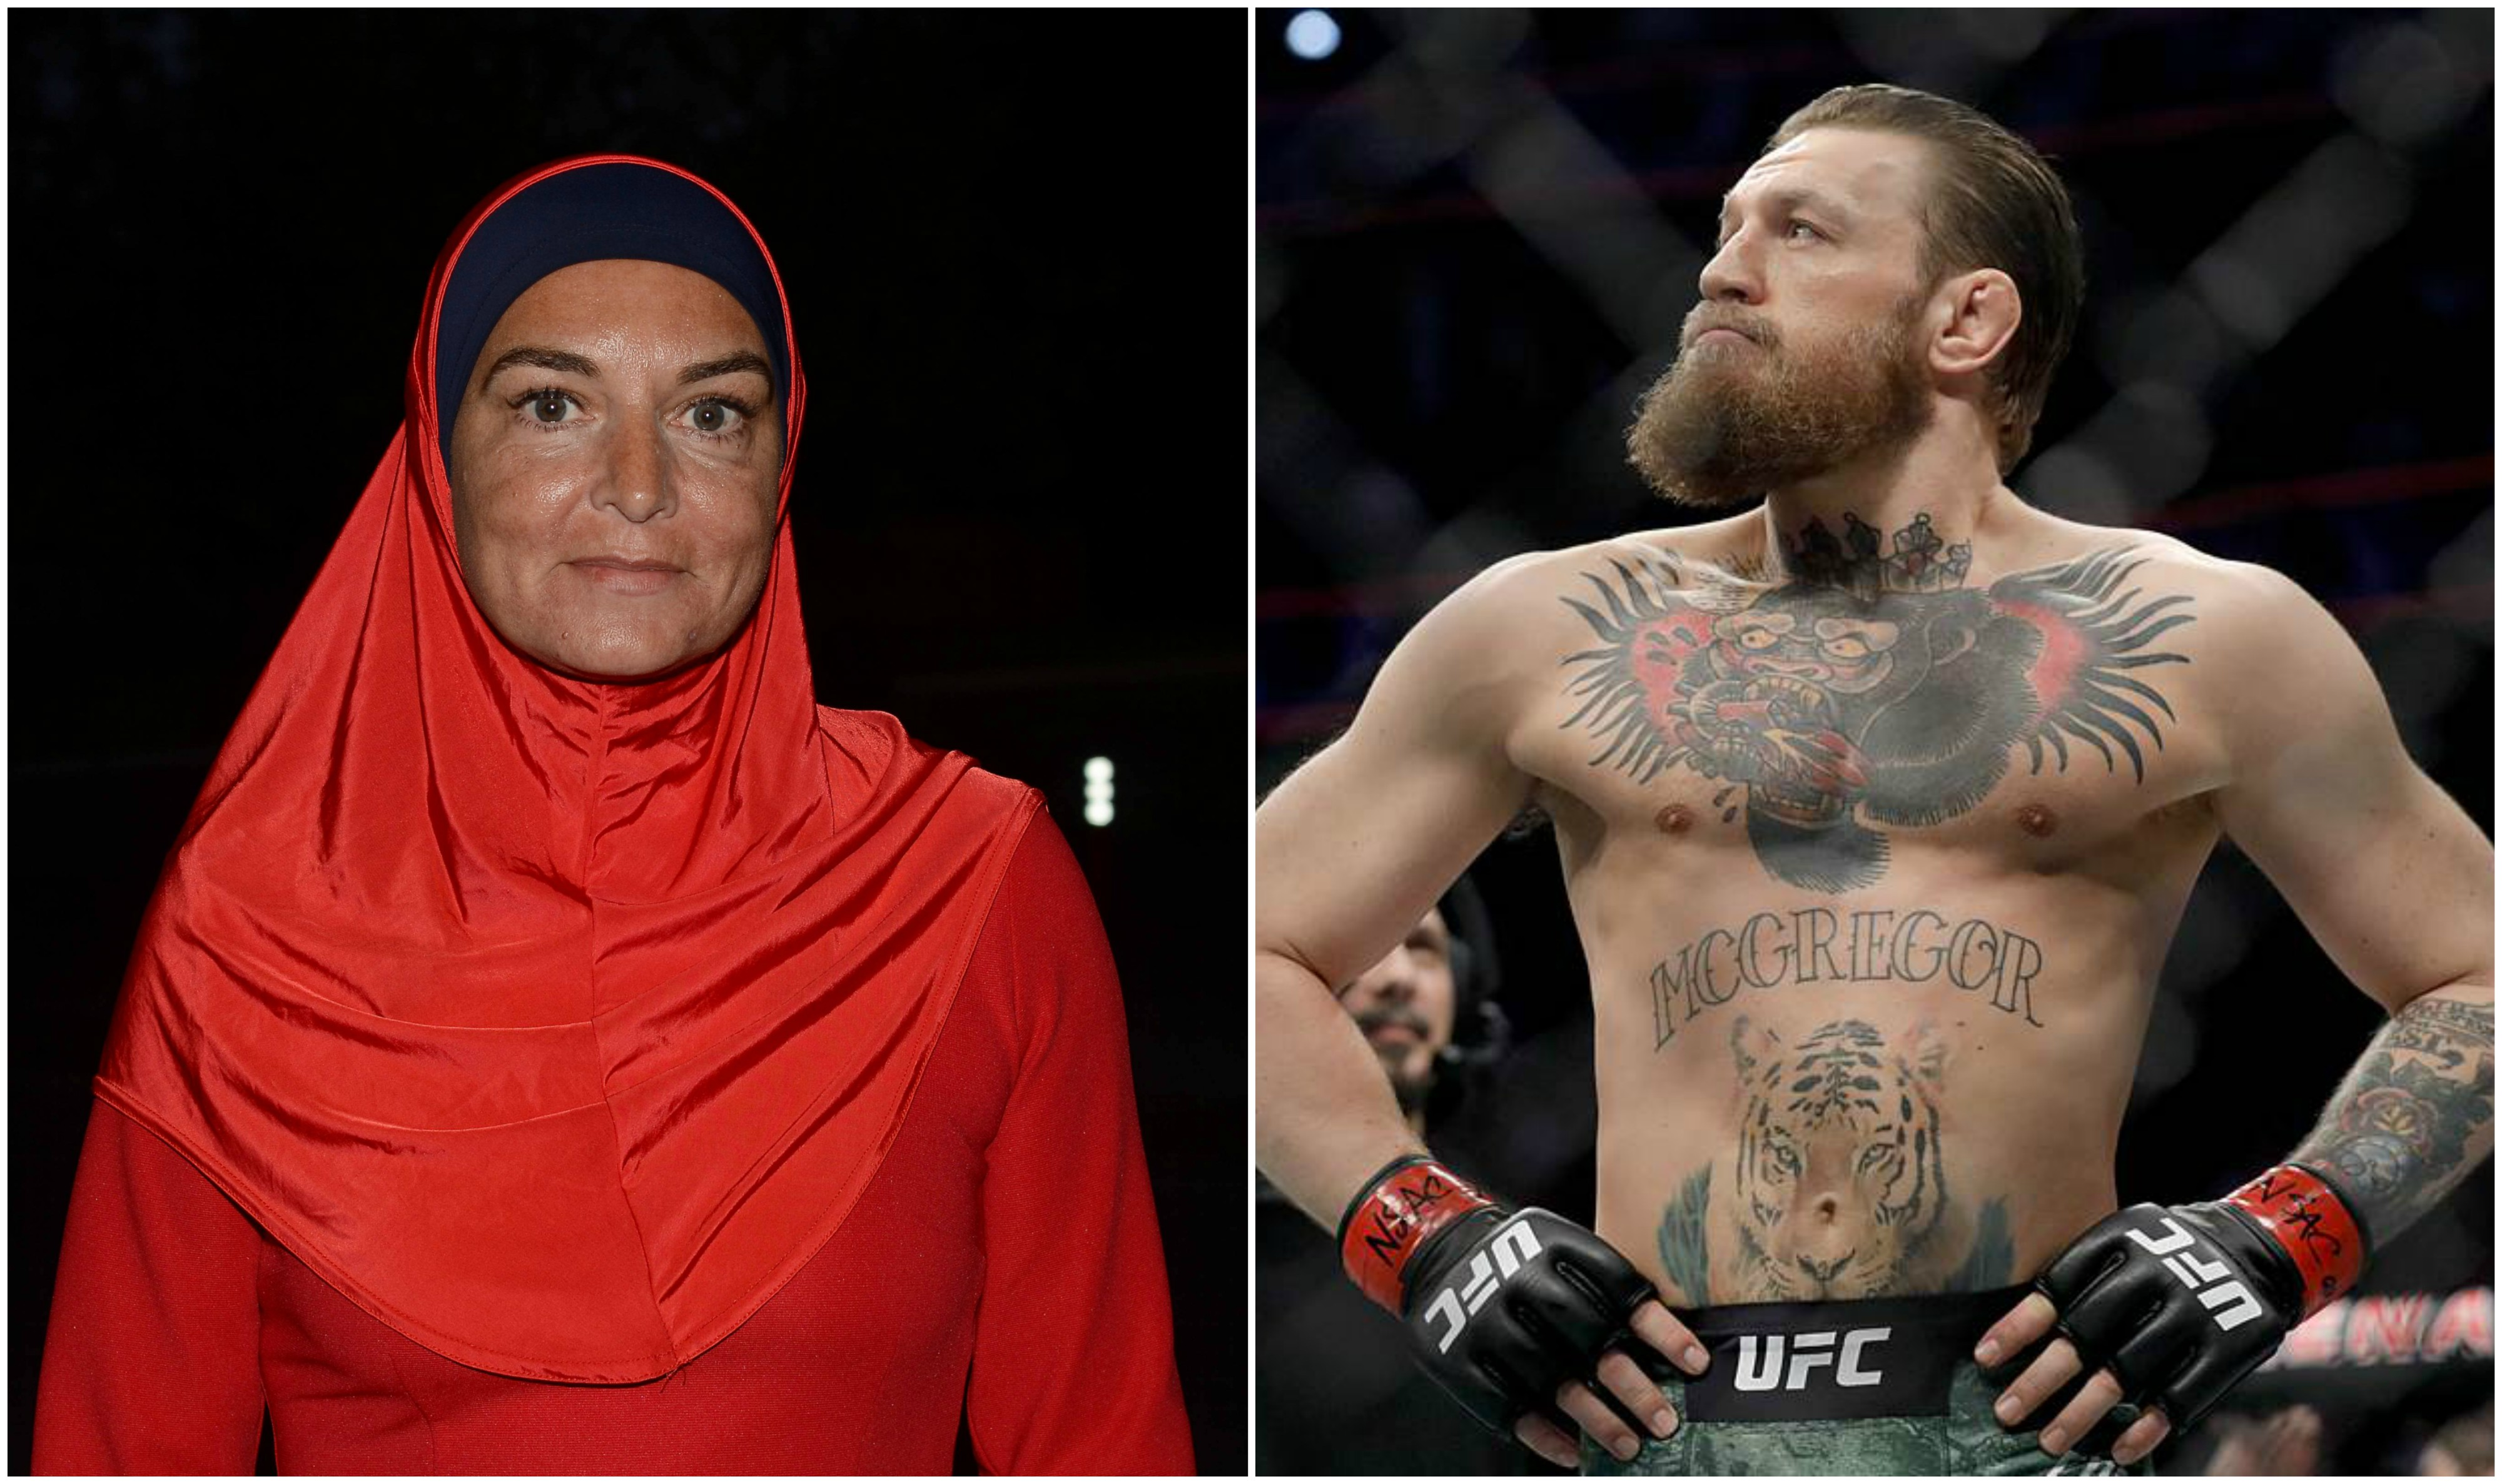 Singer who performed Conor McGregor's UFC 189 walkout accuses him of being racist! - Conor